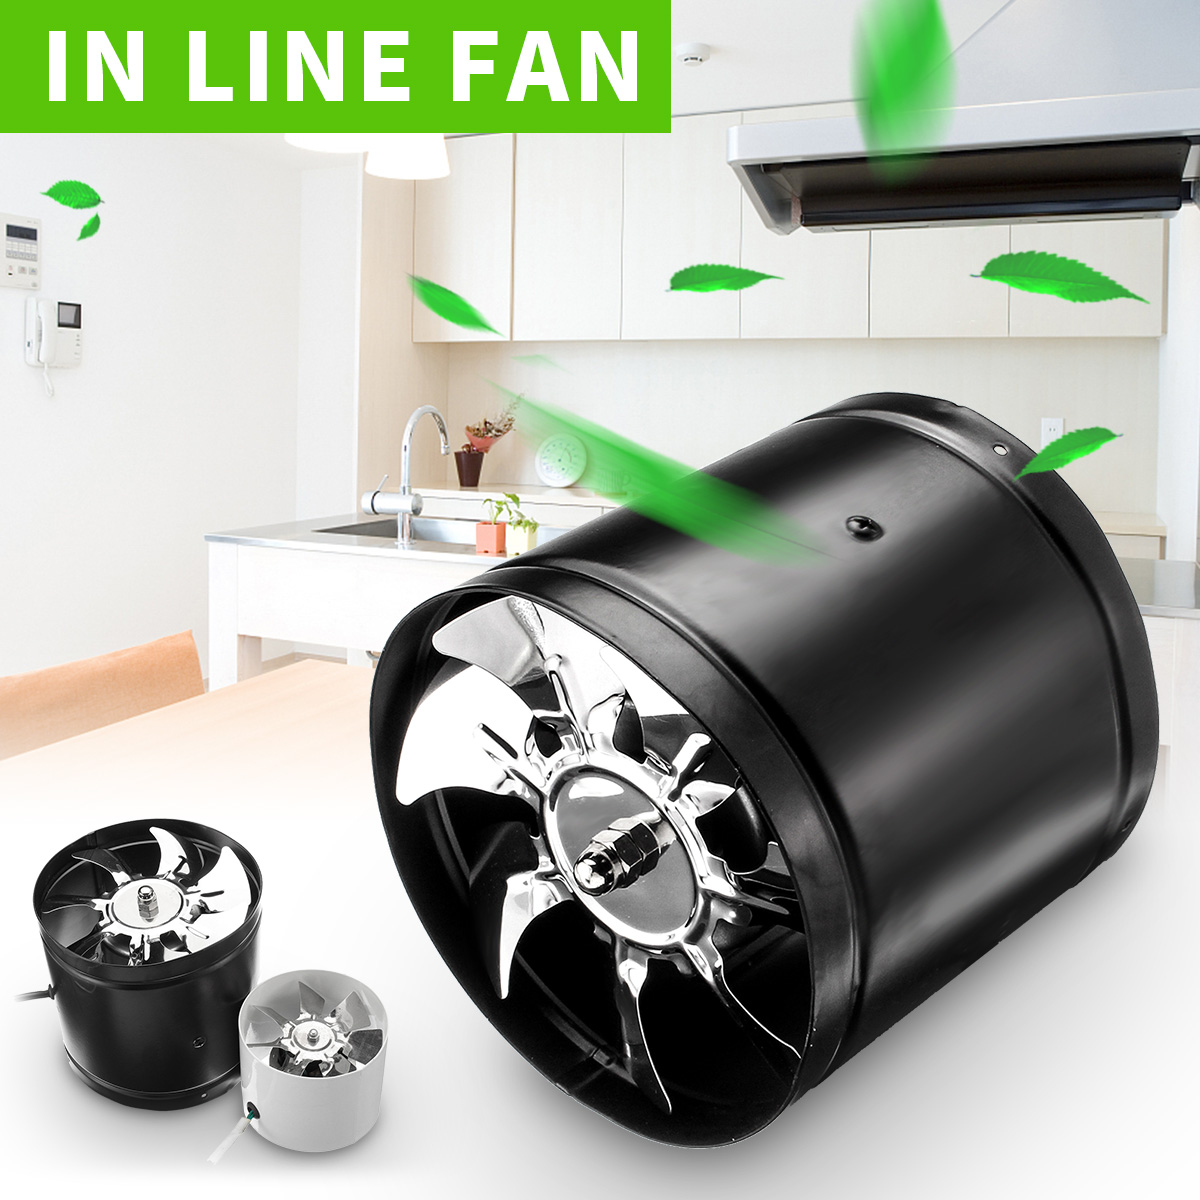 "4"" (White) 6"" (Black) Duct Booster Inline Exhaust Ducting Blower Fan Home & Kitchen Cool Vent Metal Blade Air Cooling Ventilation Vent Kitchen Bathroom Window Home Grow Tent"